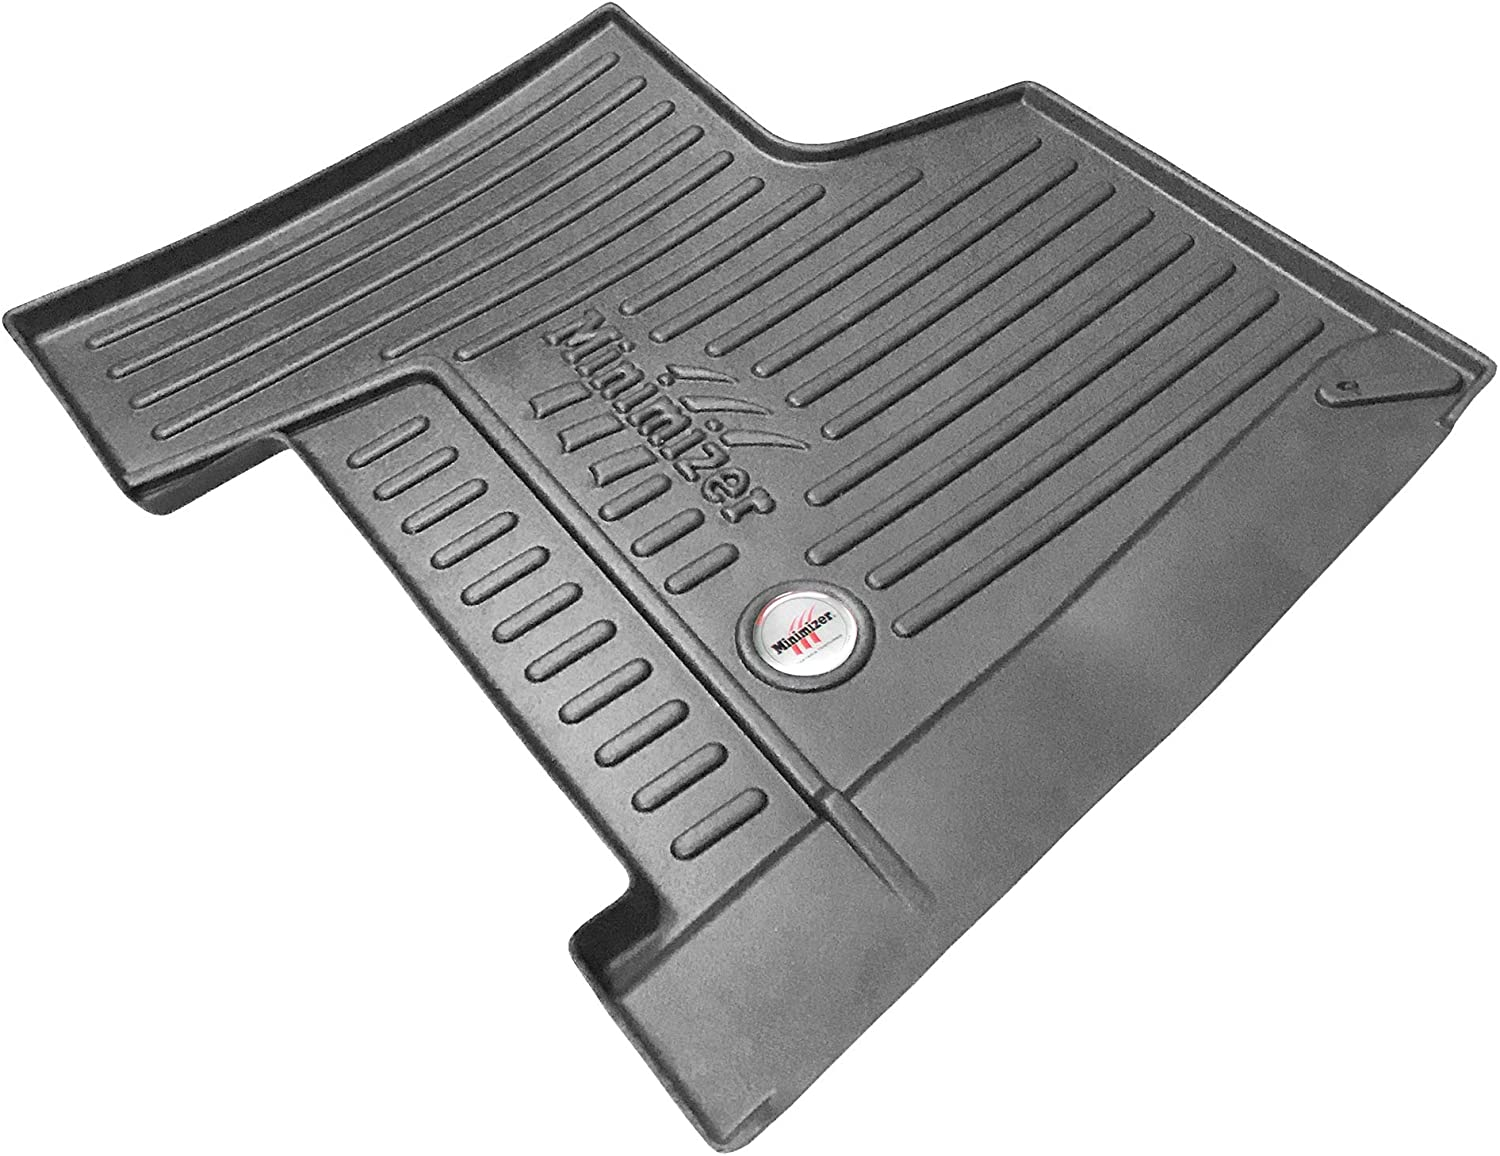 2007-17 W900 2006-07 Sleeper /& Extended Day Cabs w//Auto Trans incompatible w//06 throttle pedal; Part #100890 T600 Minimizer Floor Mats; Kenworth T440 T660 2006-20 T800 2006-20 2011-20